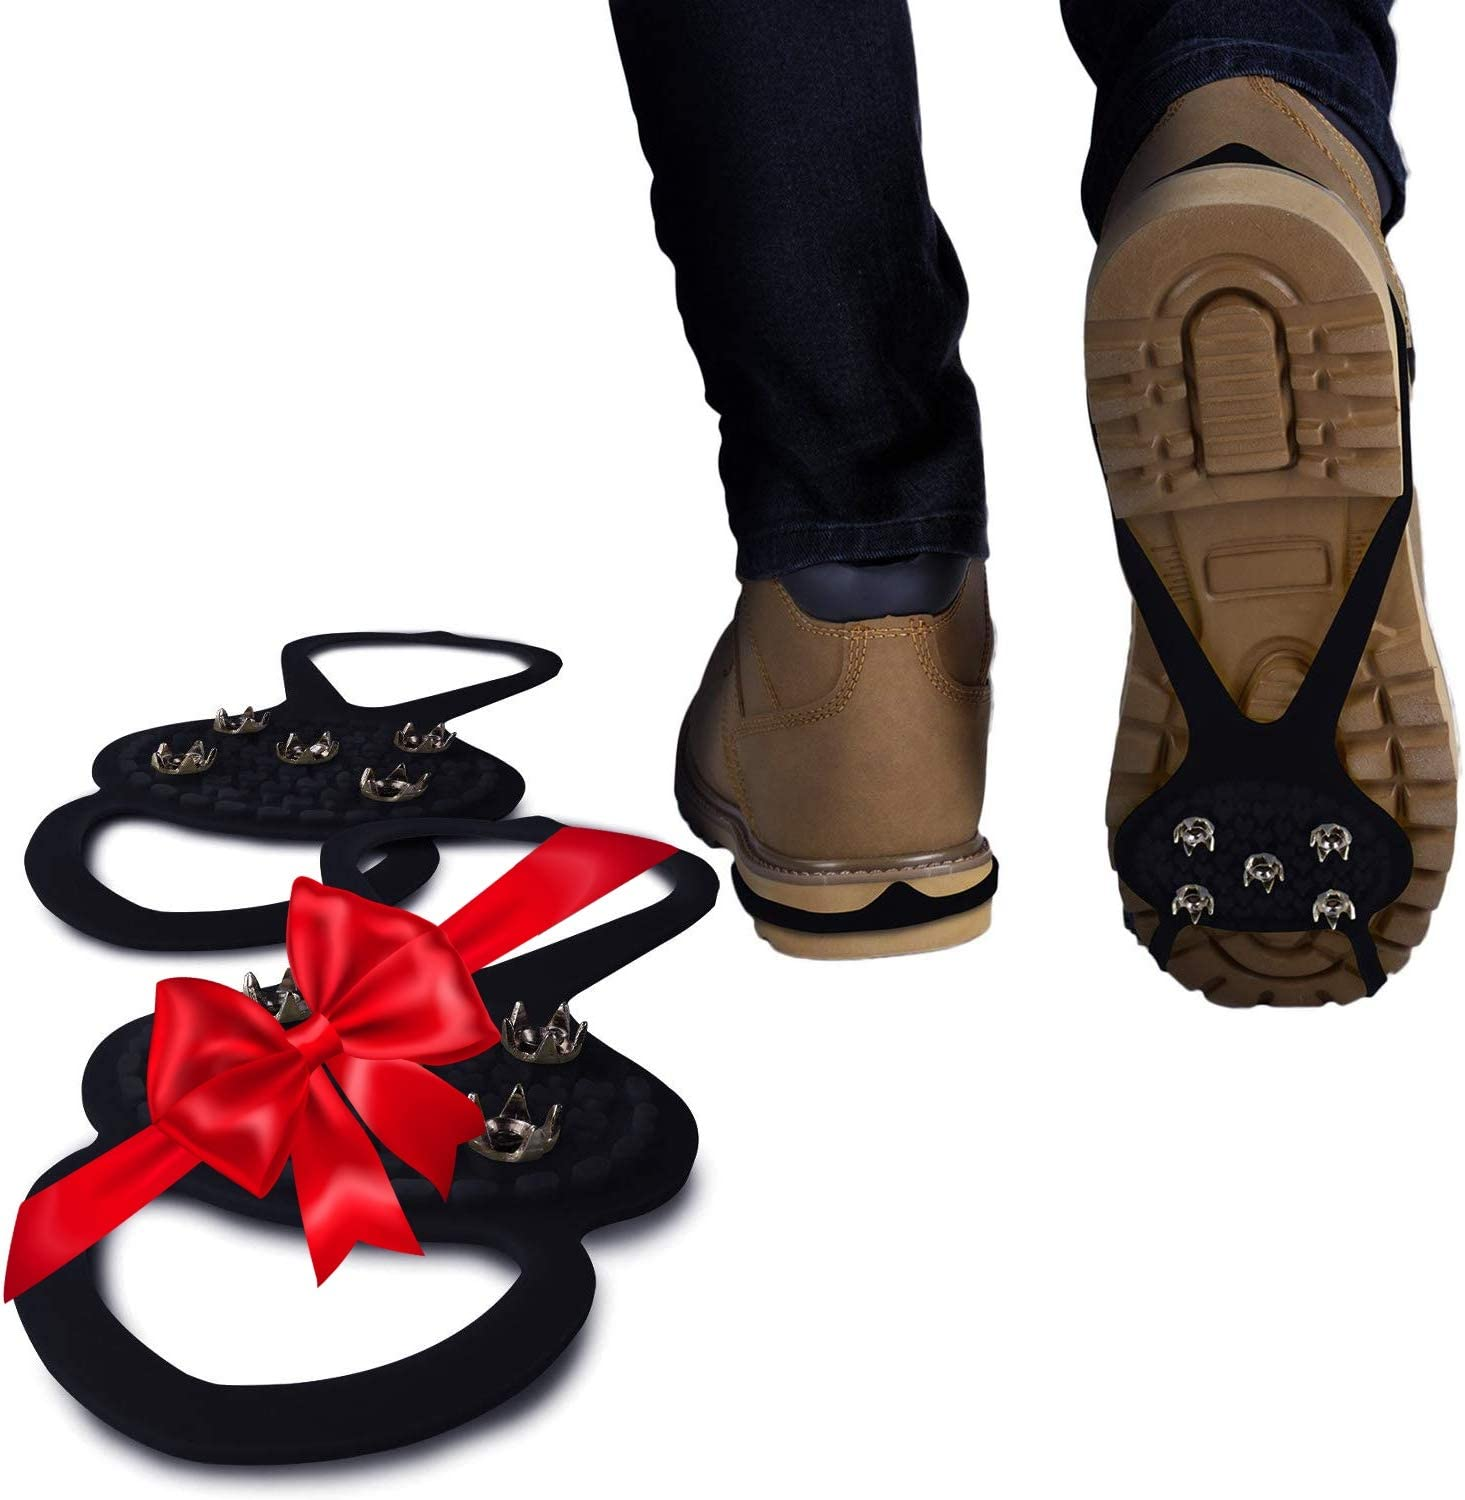 2Pair-Black-A Universal Non-Slip Gripper Spikes Silicone Crampons Ice Grips Cleat Shoes Ice Climbing Shoes ice Gripper Spike Anti Skid Anti Slip ice Grippers Outdoor Snow Climbing